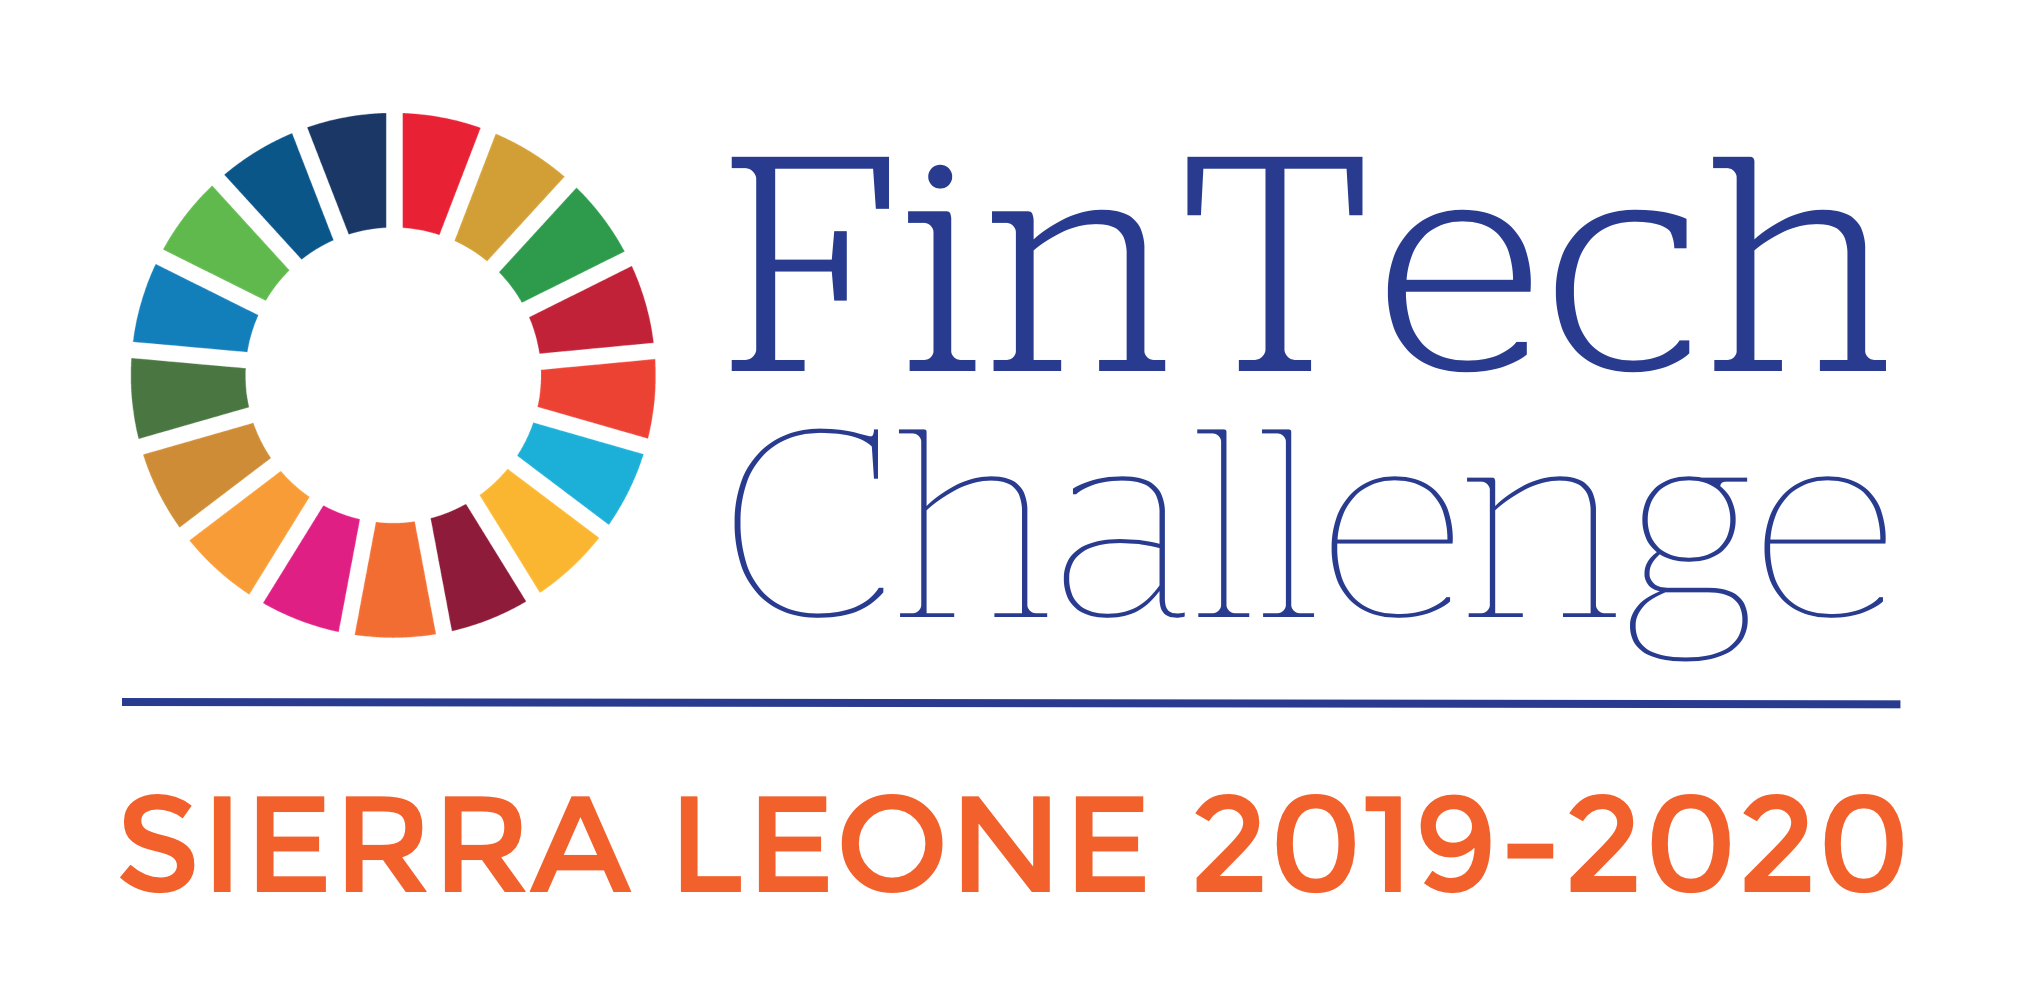 UNCDF/IBSA Sierra Leone FinT­ech Challenge 2019-2020 for Financial Inclusion